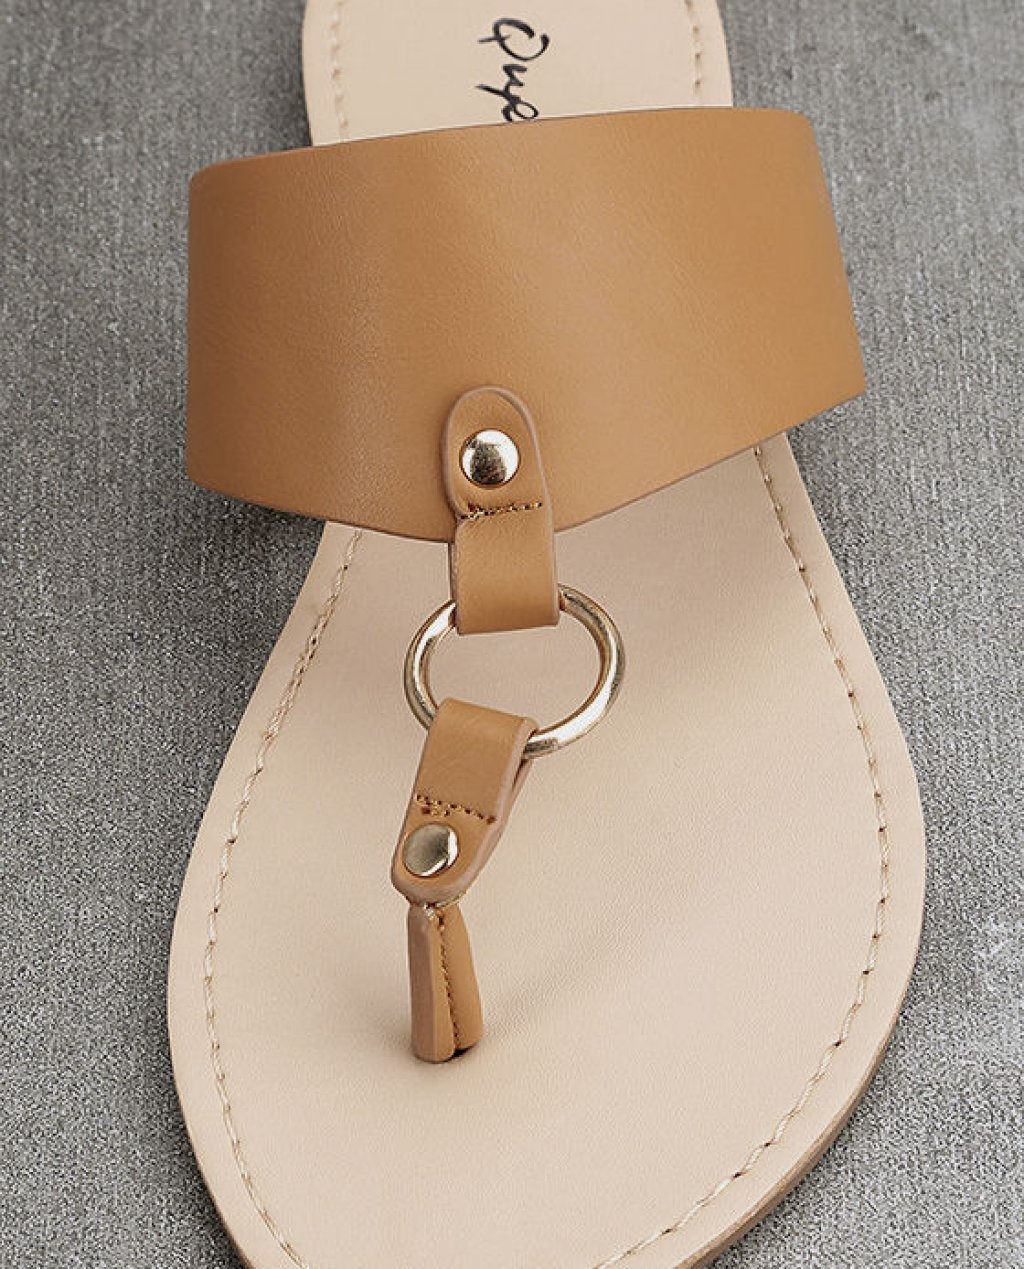 4e211e06ea35e8 Cute Thong Sandals - Camel Sandals - Flat Sandals Price  18.00